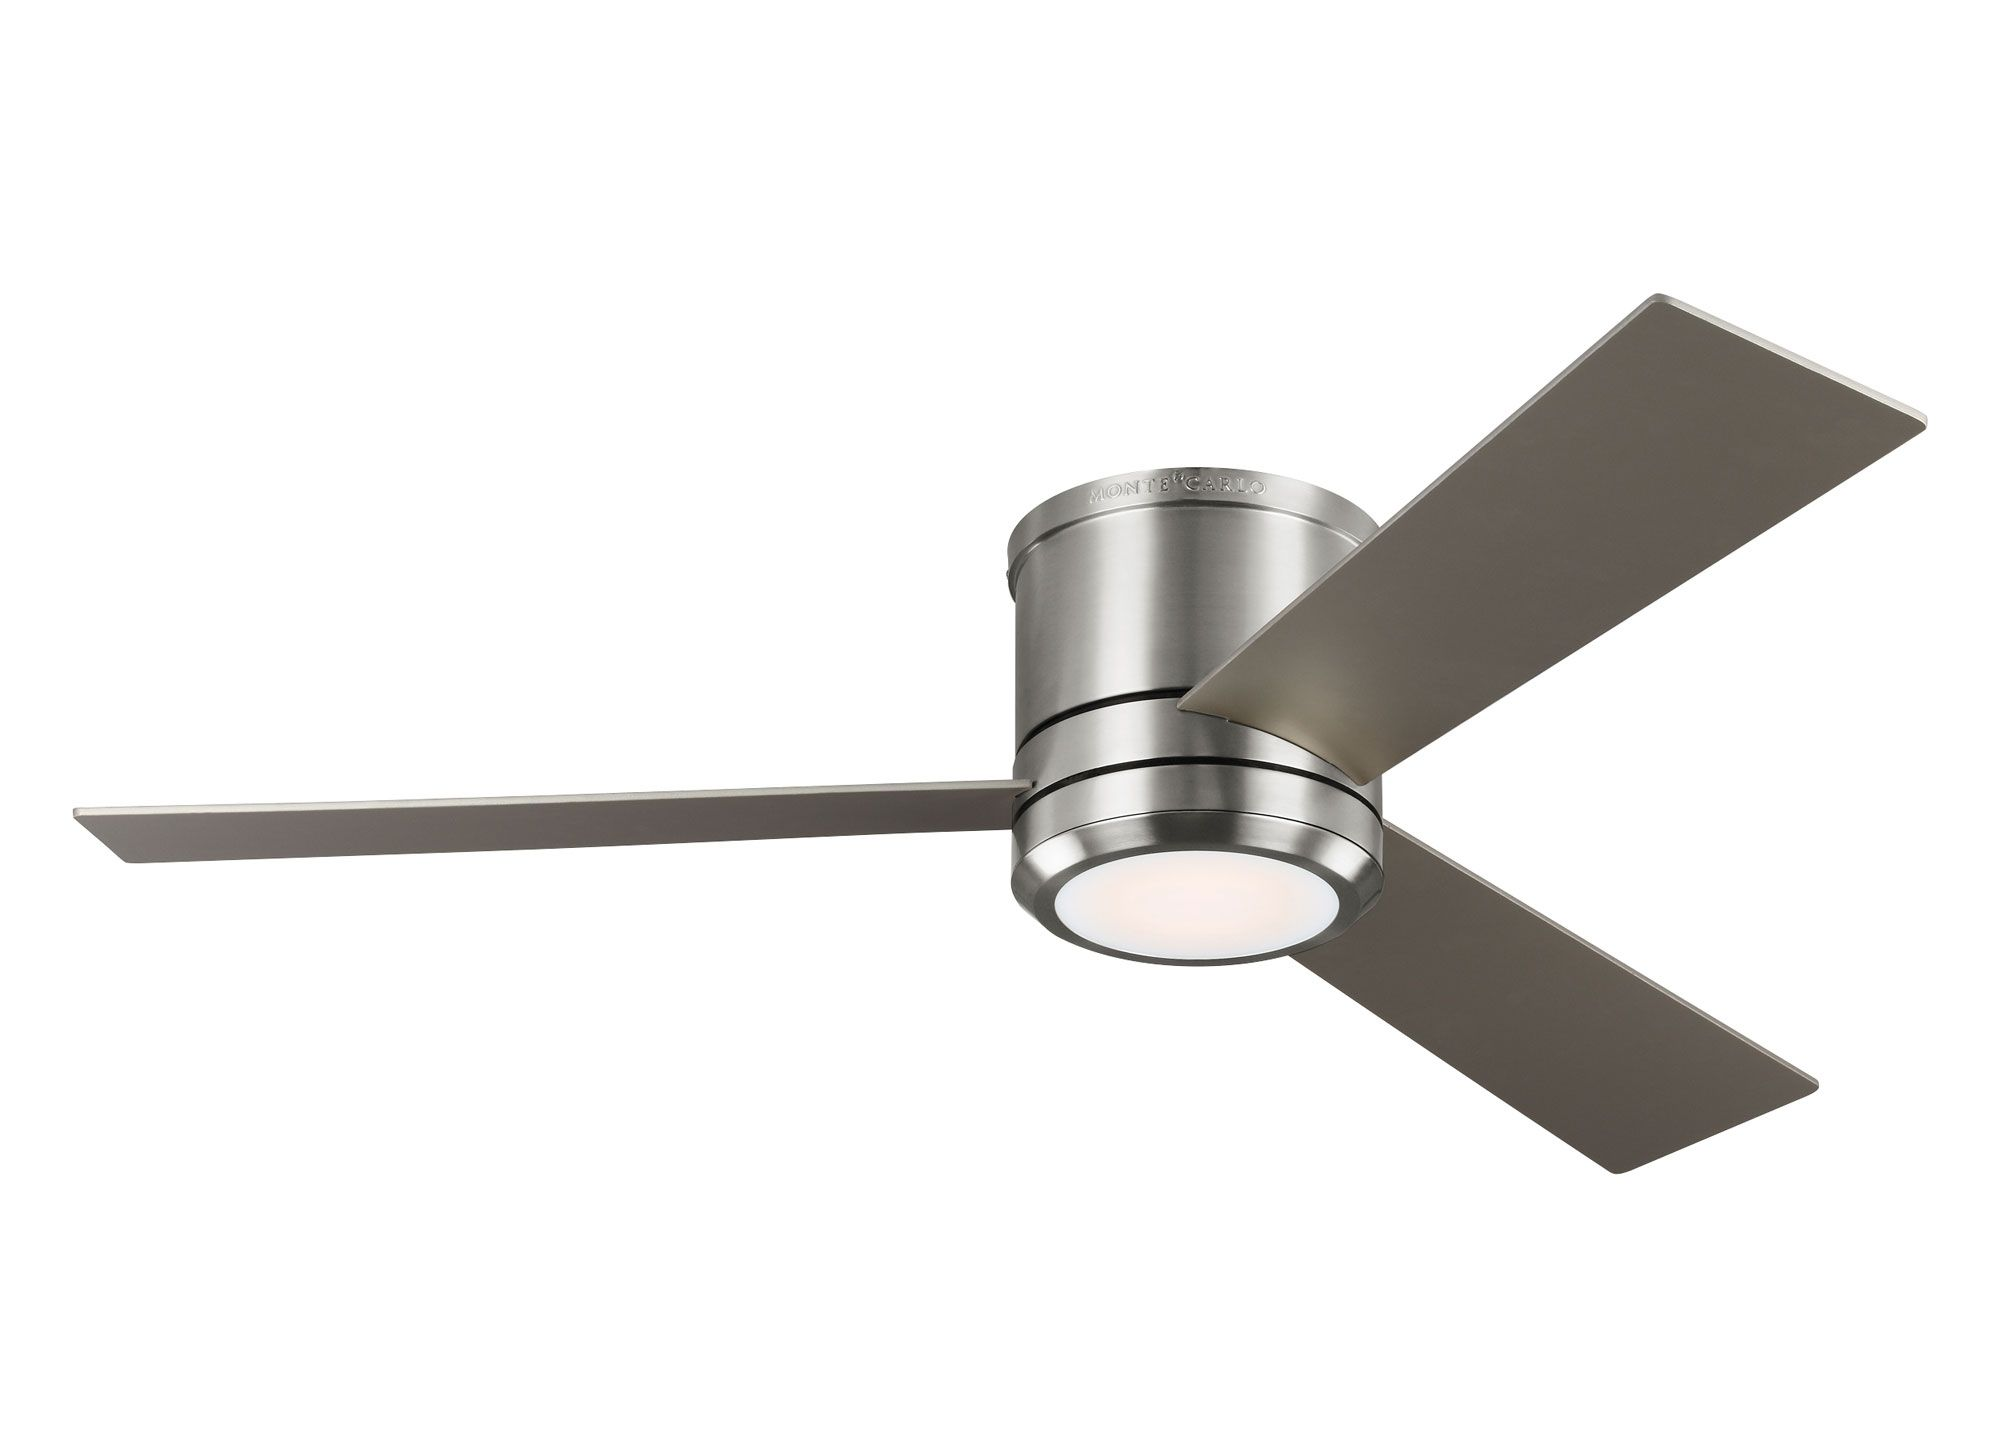 Luminous ceiling fan with led light and remote http luminous ceiling fan with led light and remote aloadofball Choice Image